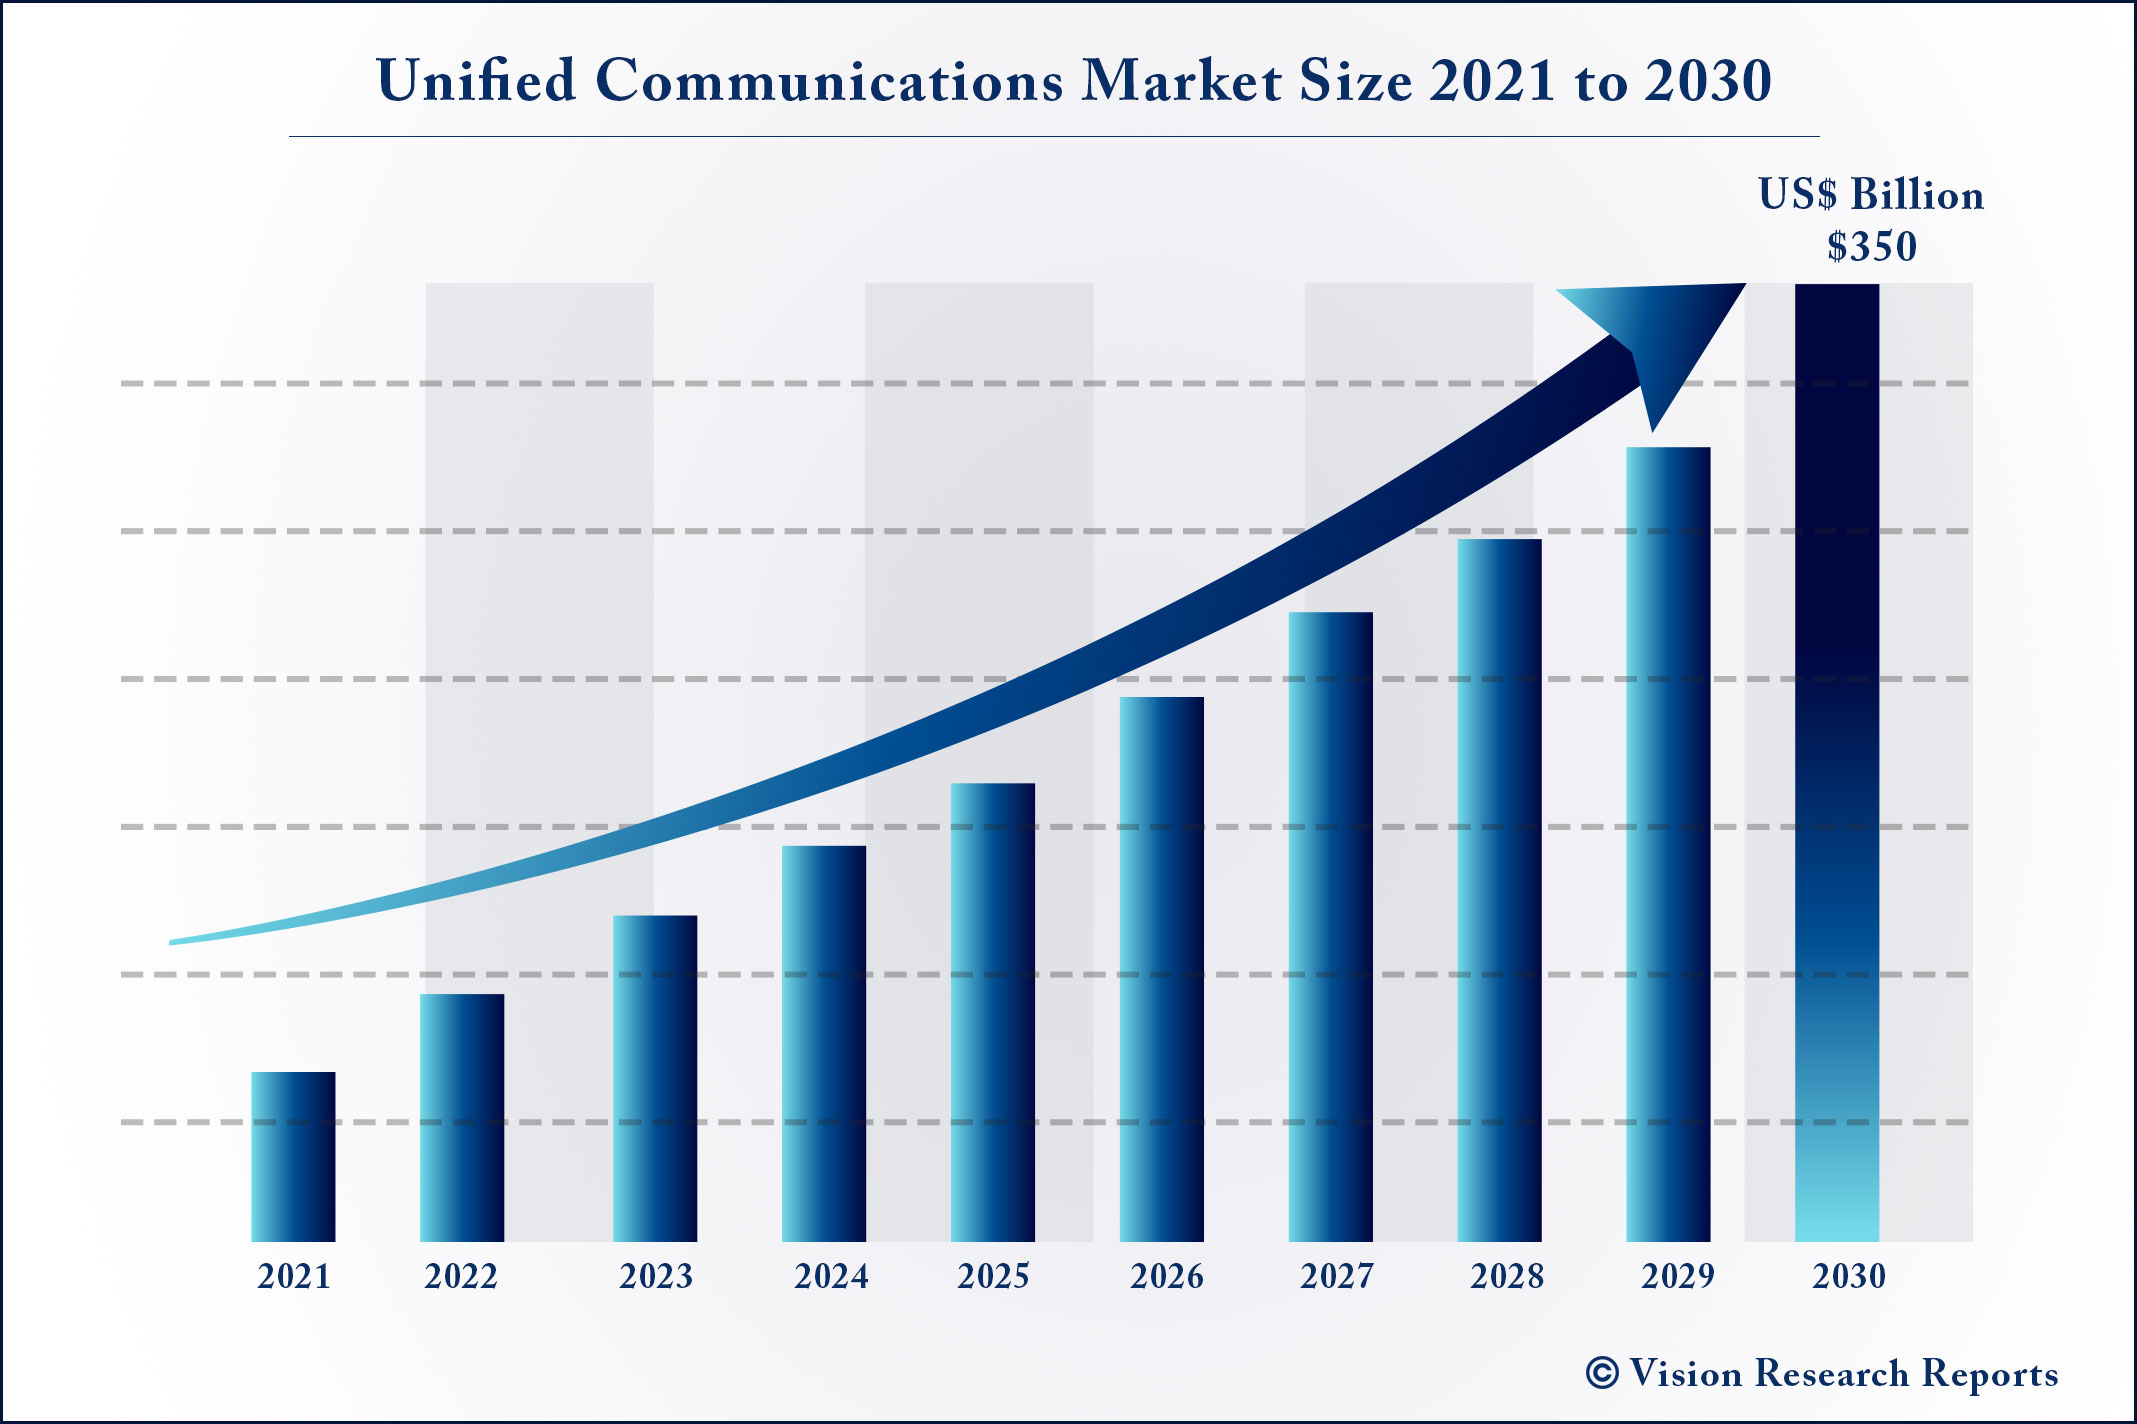 Unified Communications Market Size 2021 to 2030